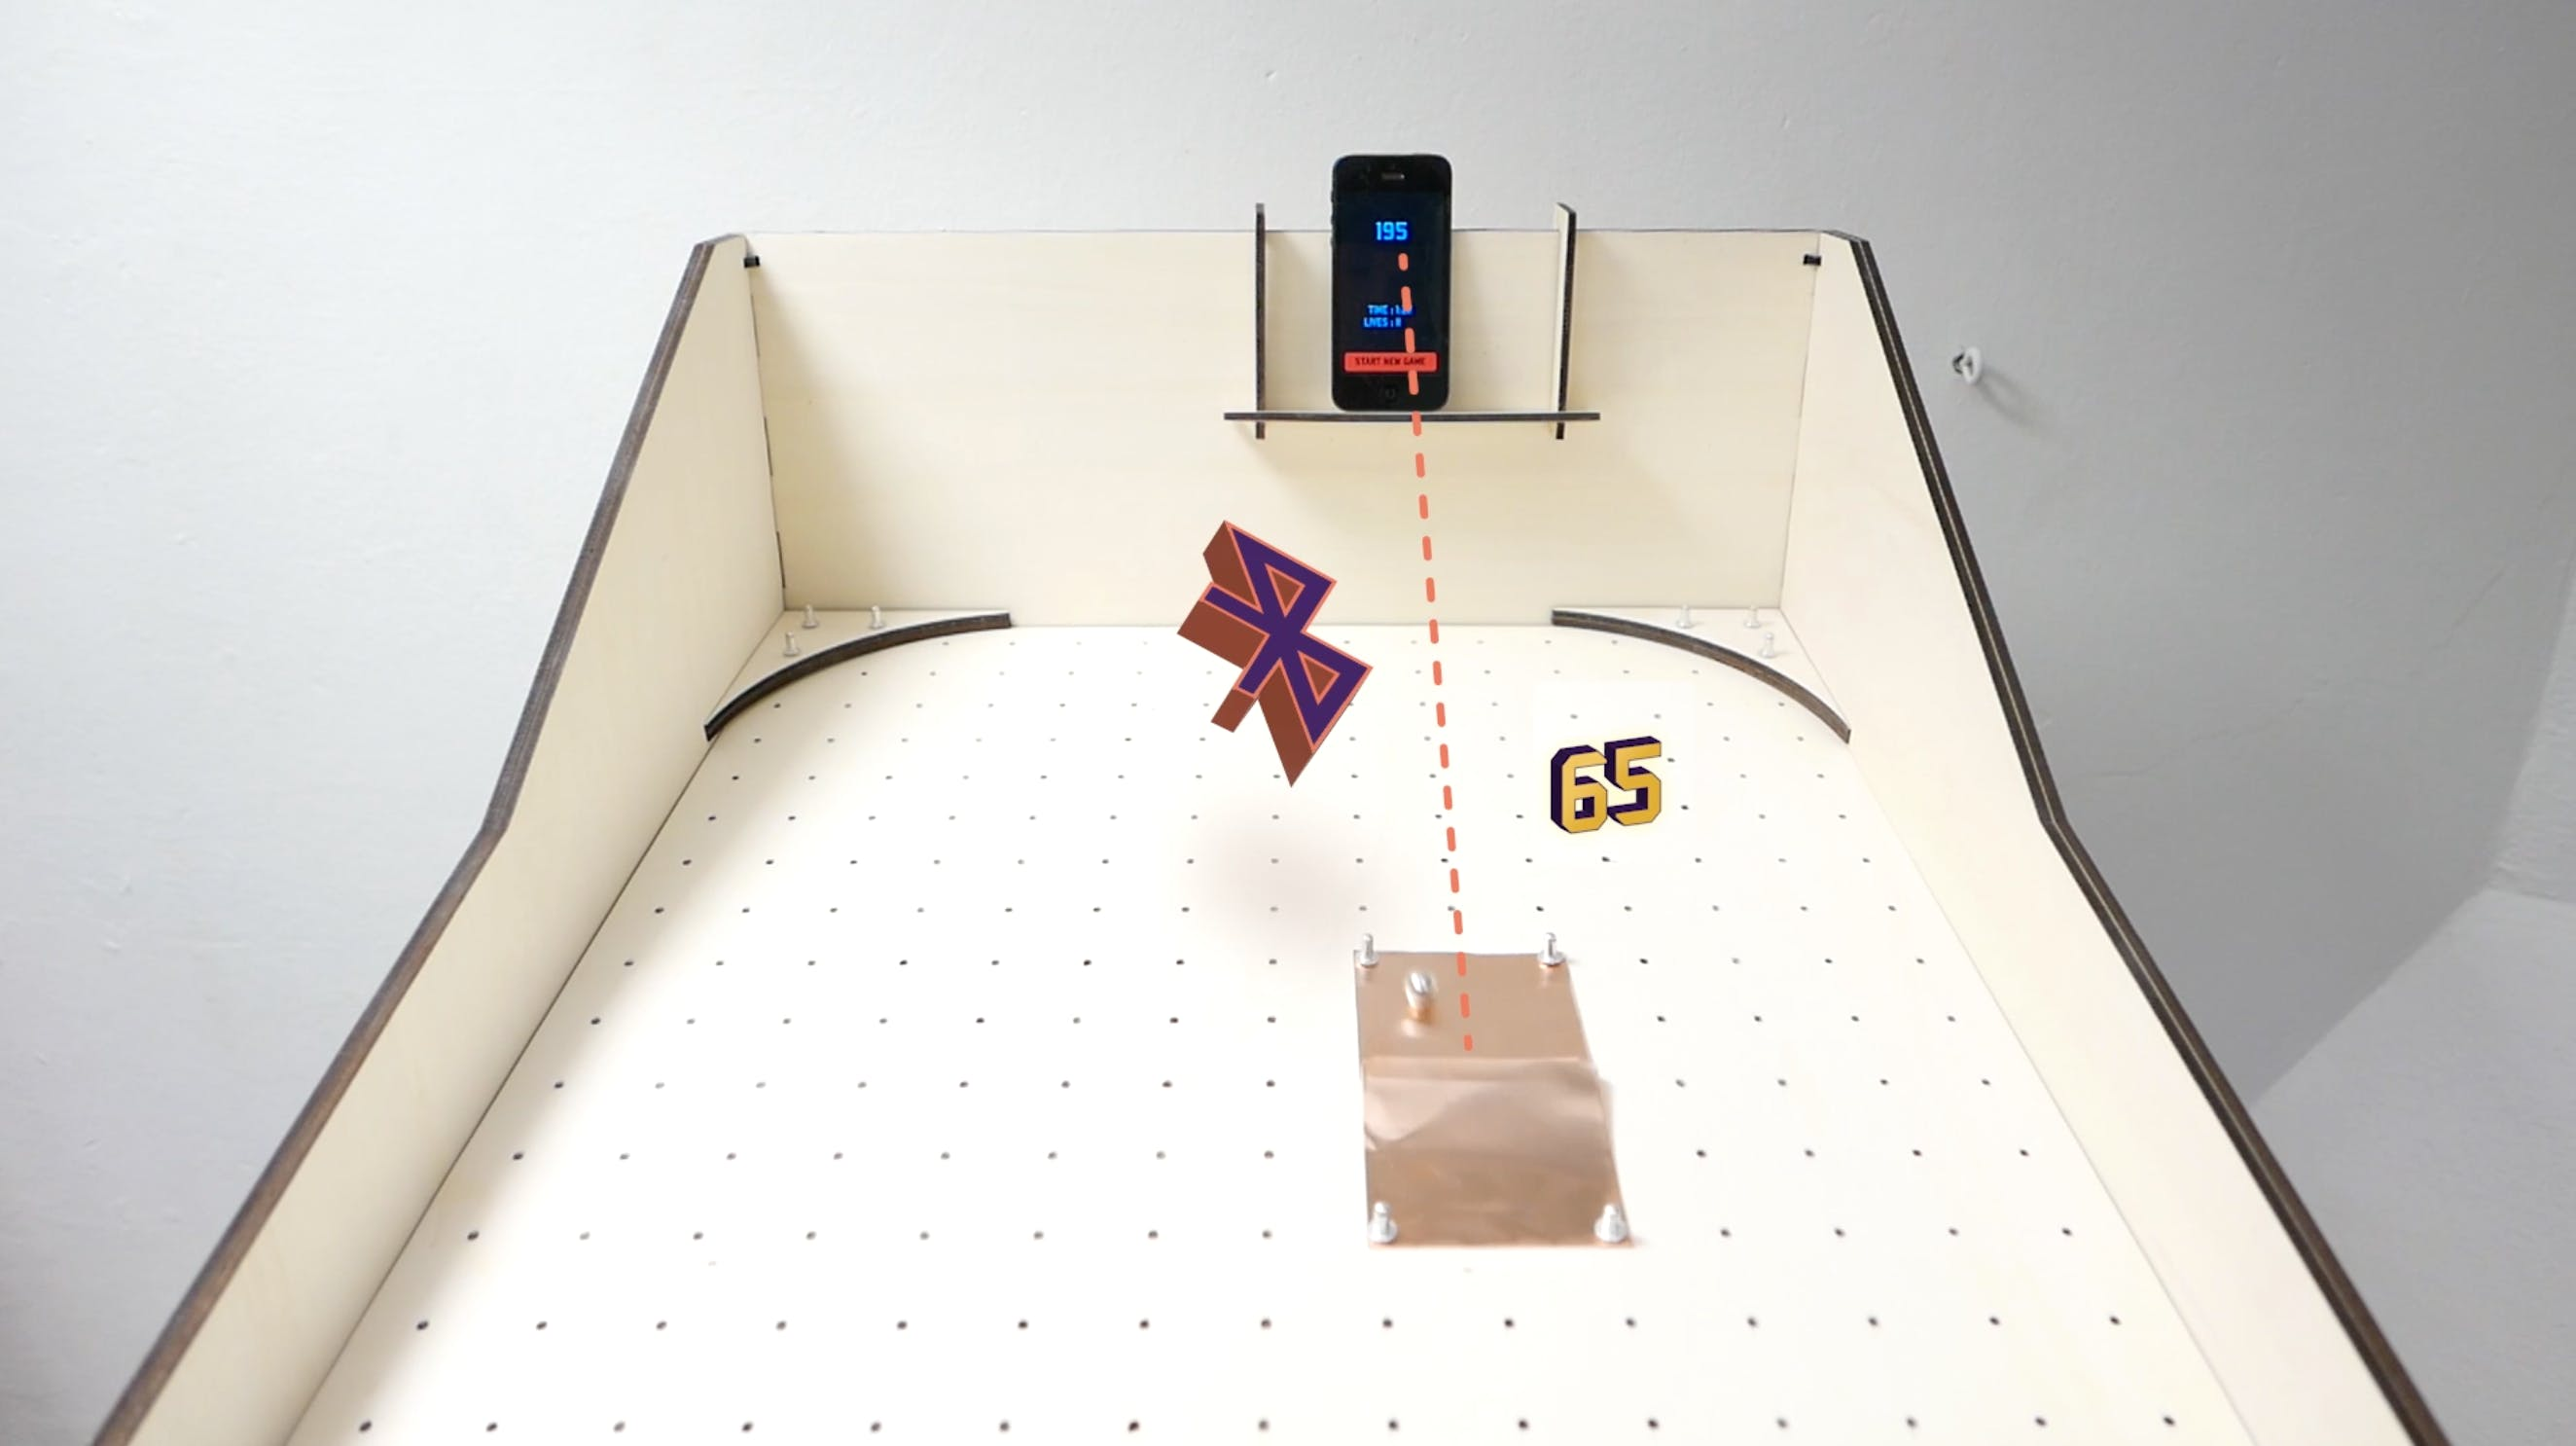 The ball connects the two copper foils and sends the signal over the microcontroller to the smartphone.